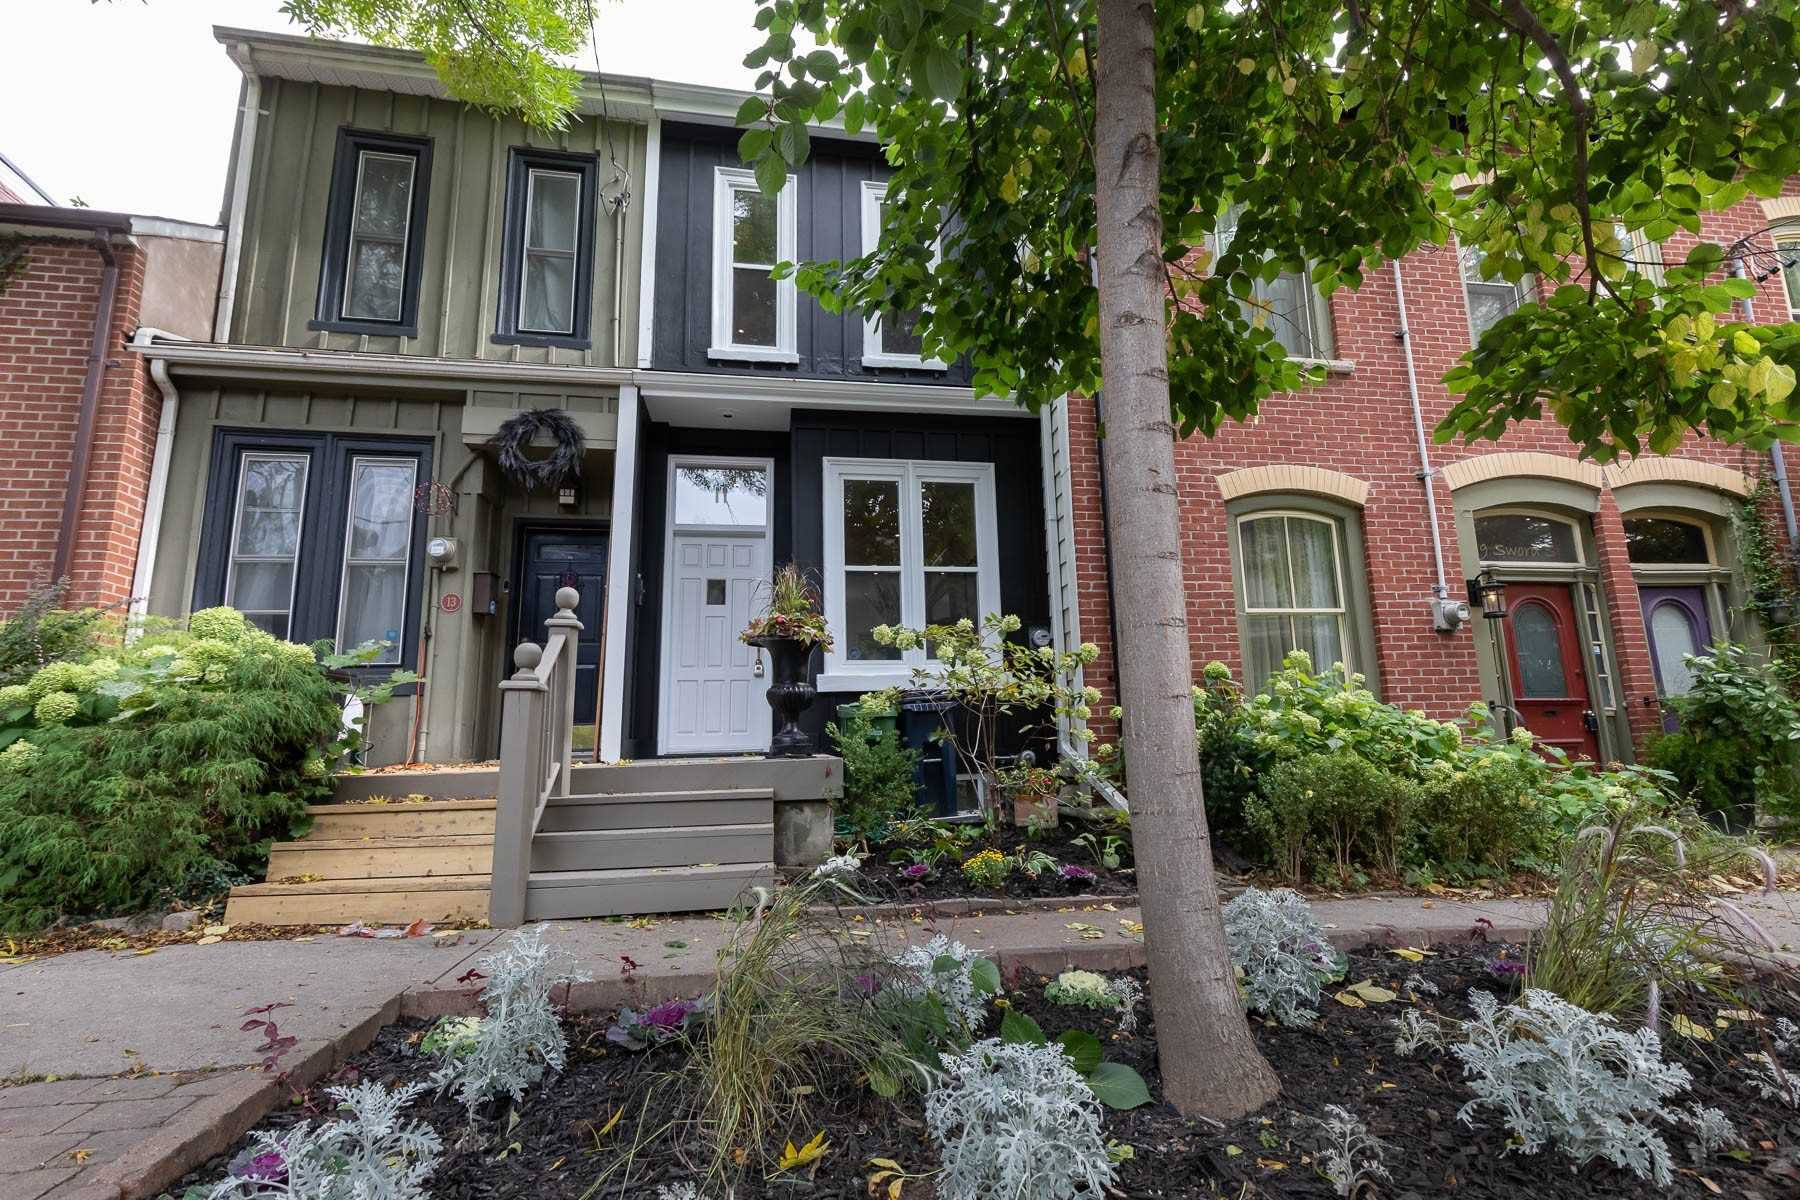 Main Photo: 11 Sword Street in Toronto: Cabbagetown-South St. James Town House (2-Storey) for sale (Toronto C08)  : MLS®# C4602419